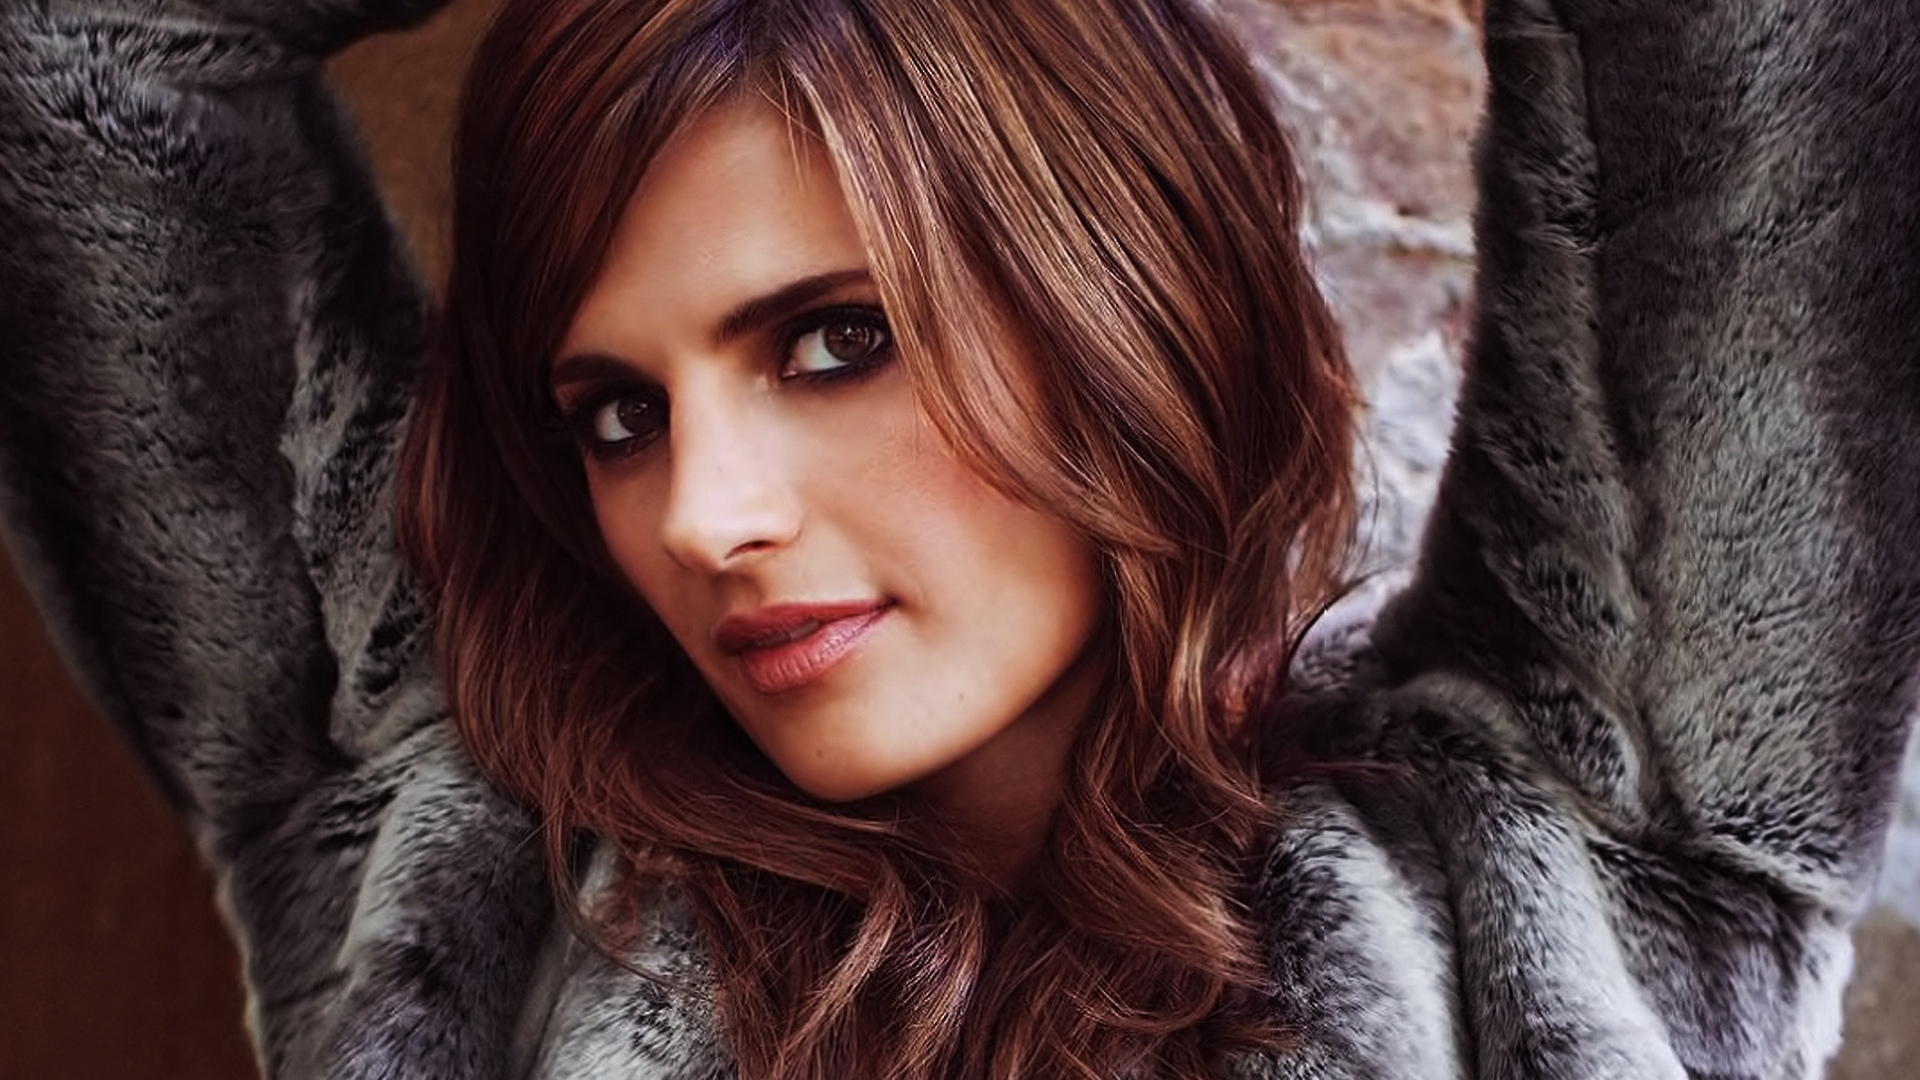 stana katic actress wallpaper - photo #18